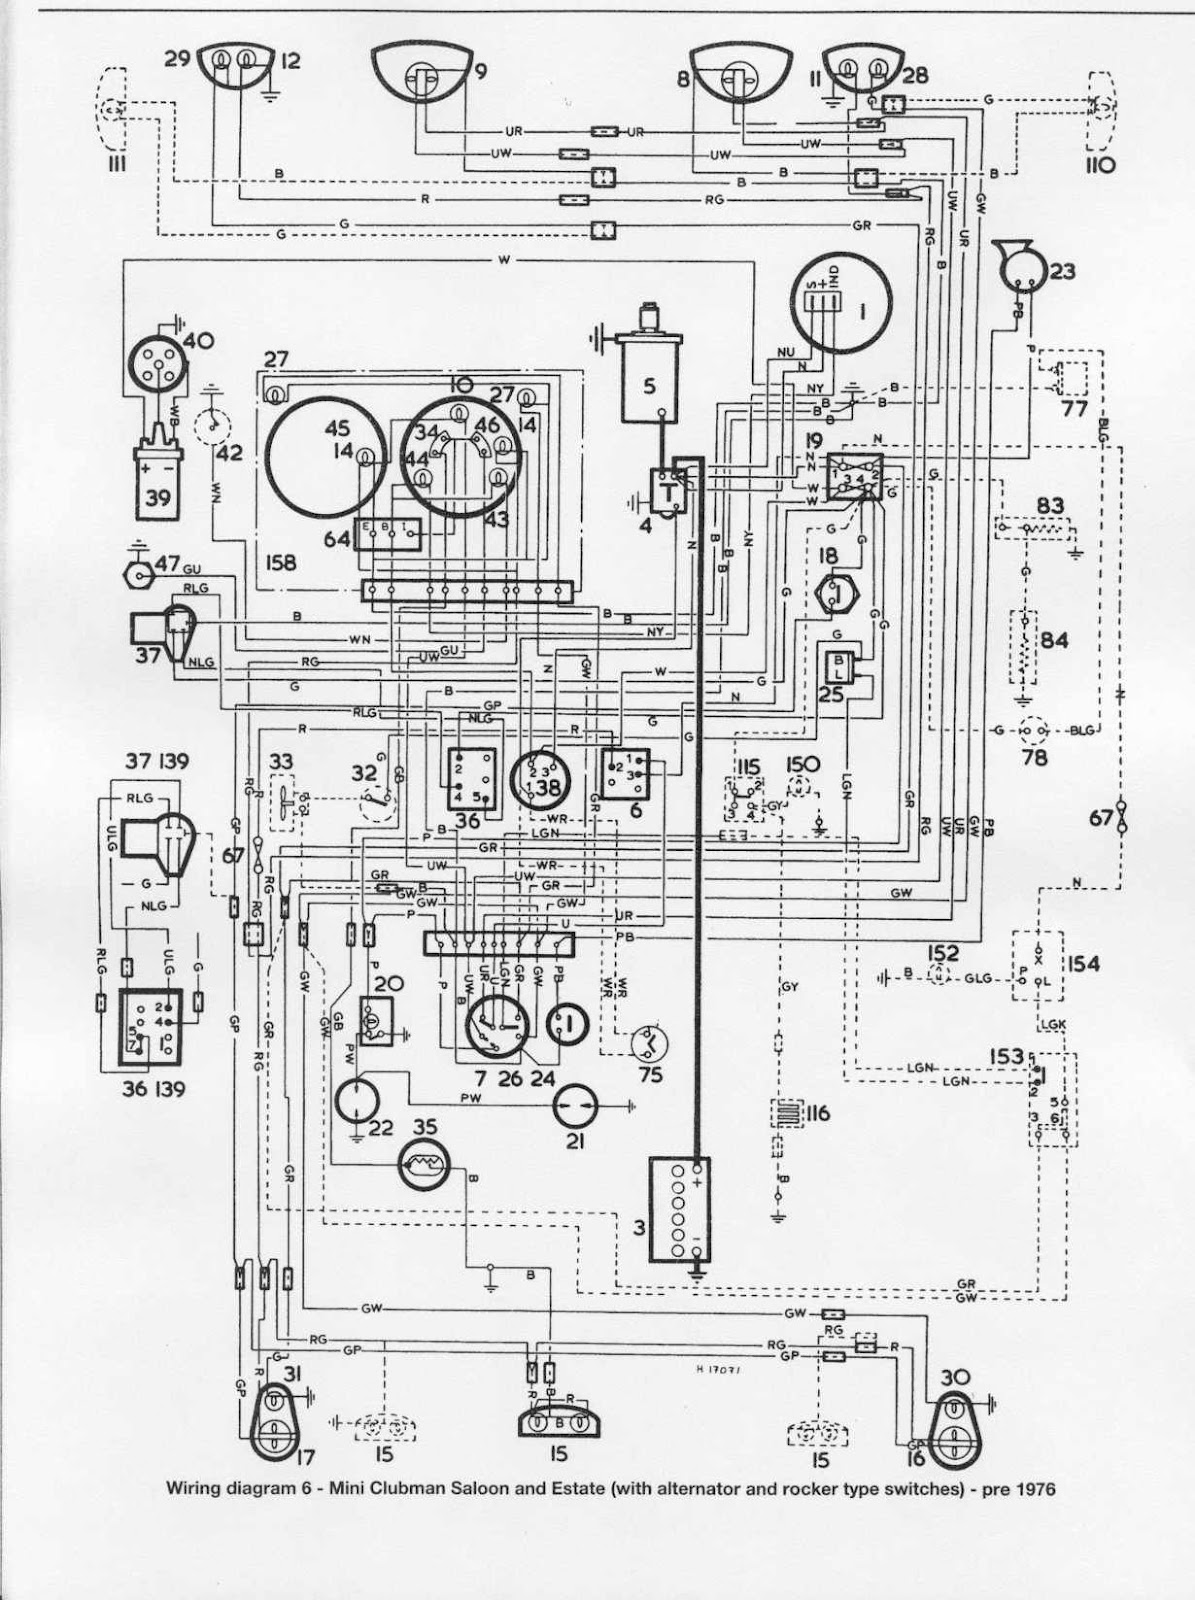 2003 Mini Cooper Stereo Wiring Diagram : Wiring diagram for mini cooper clubman get free